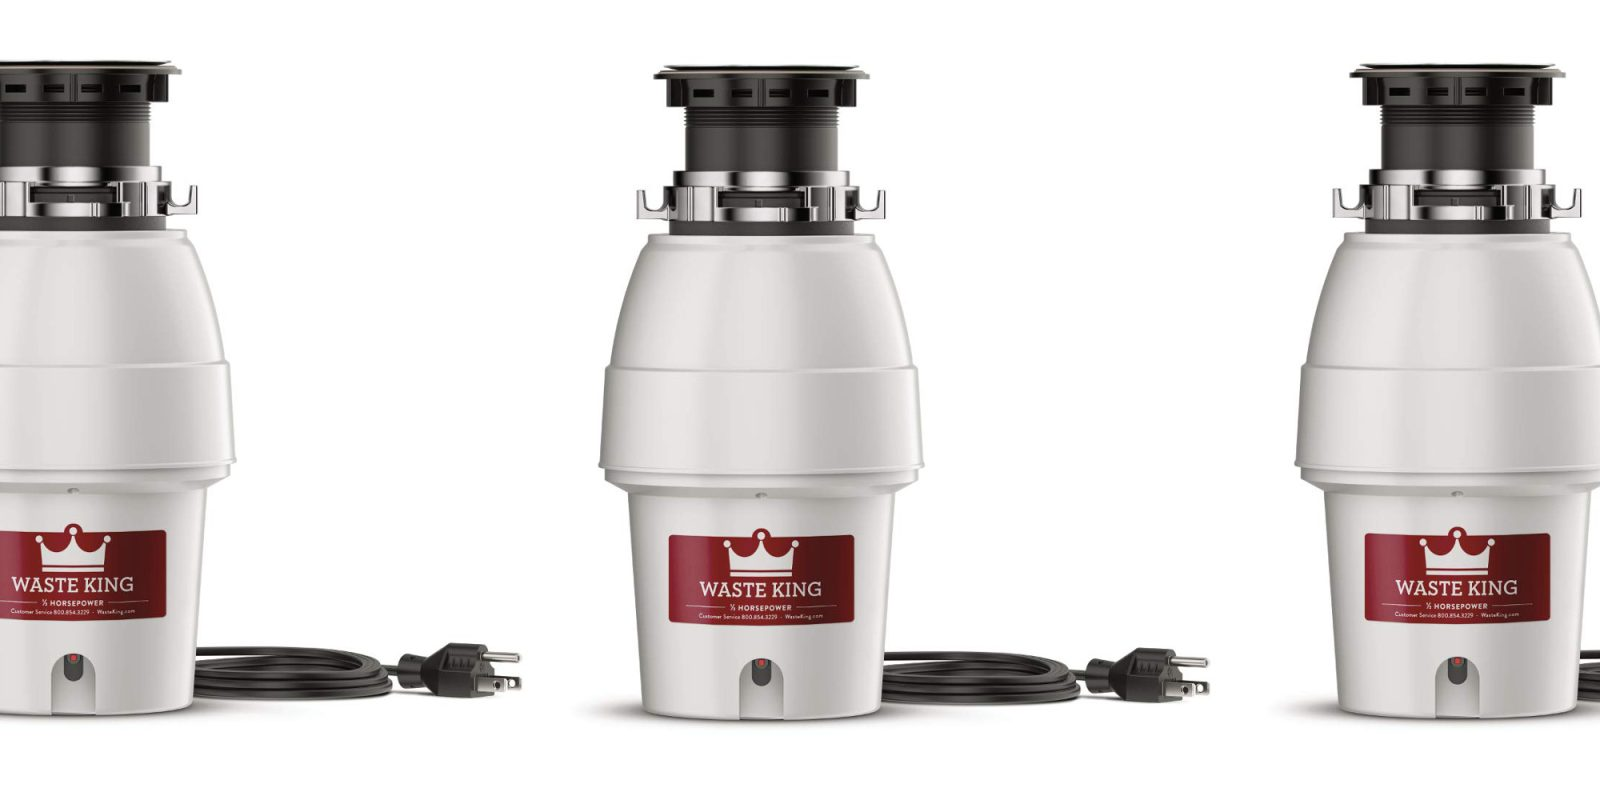 Outfit the kitchen with a Waste King Garbage Disposal from $50 today (30% off)